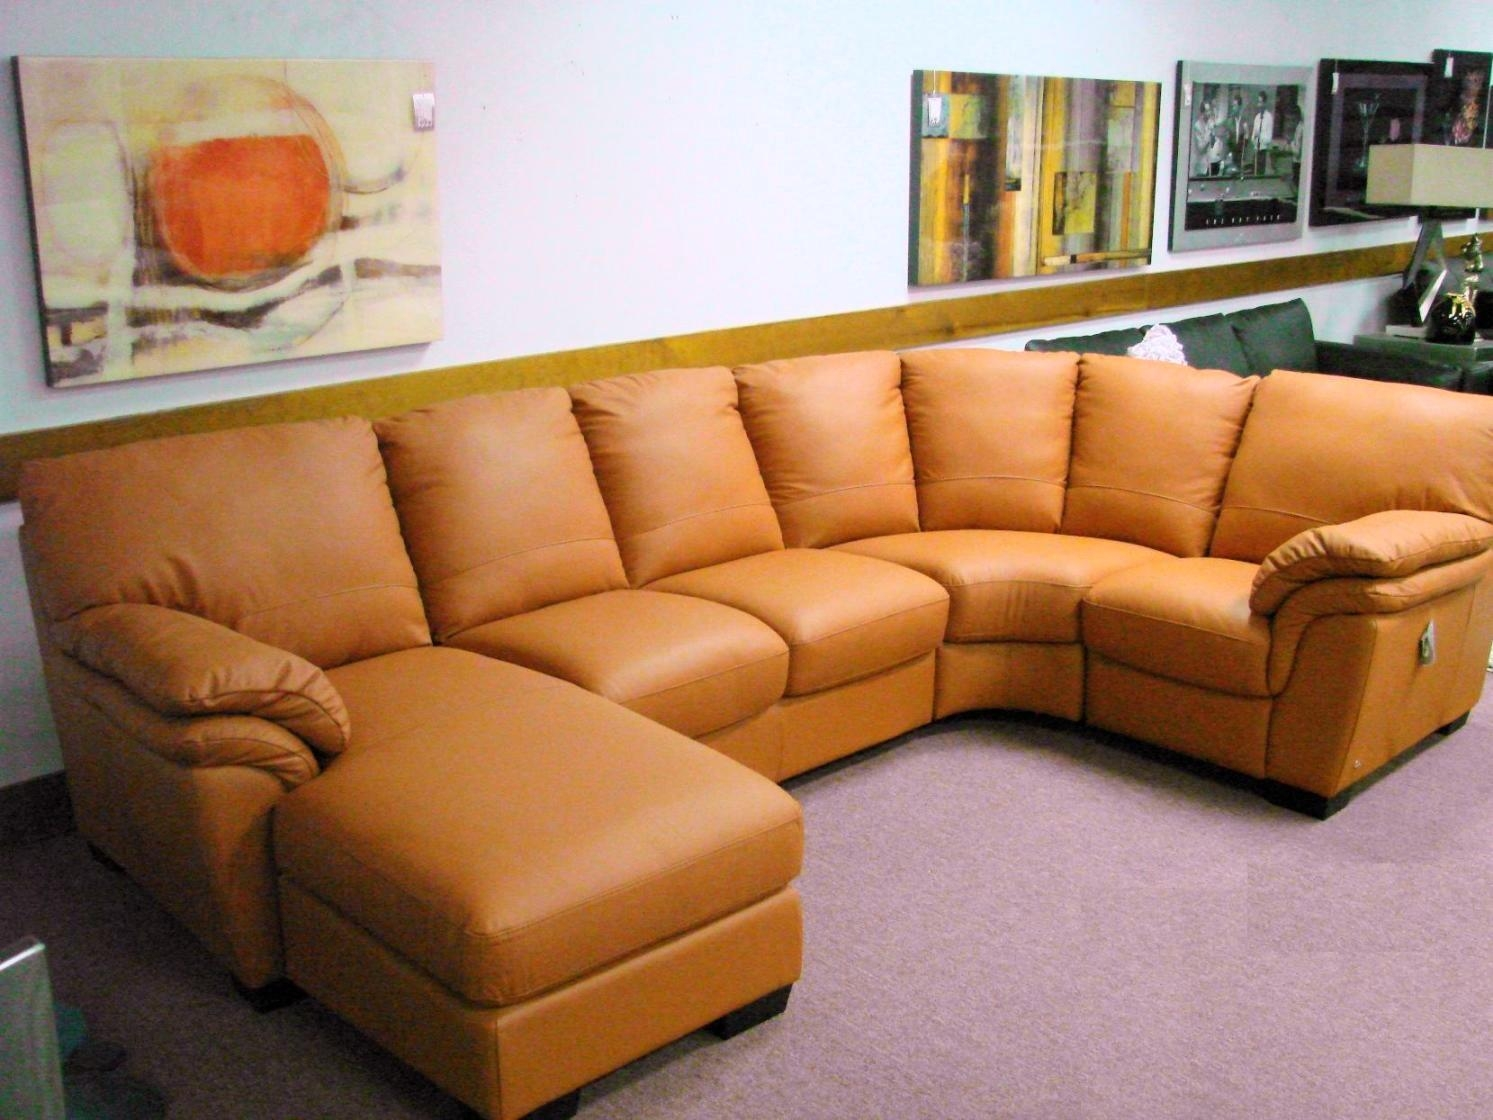 Sofas Center : Camel Colored Leather Sofa How To Style Pottery Regarding Victorian Leather Sofas (Image 13 of 20)